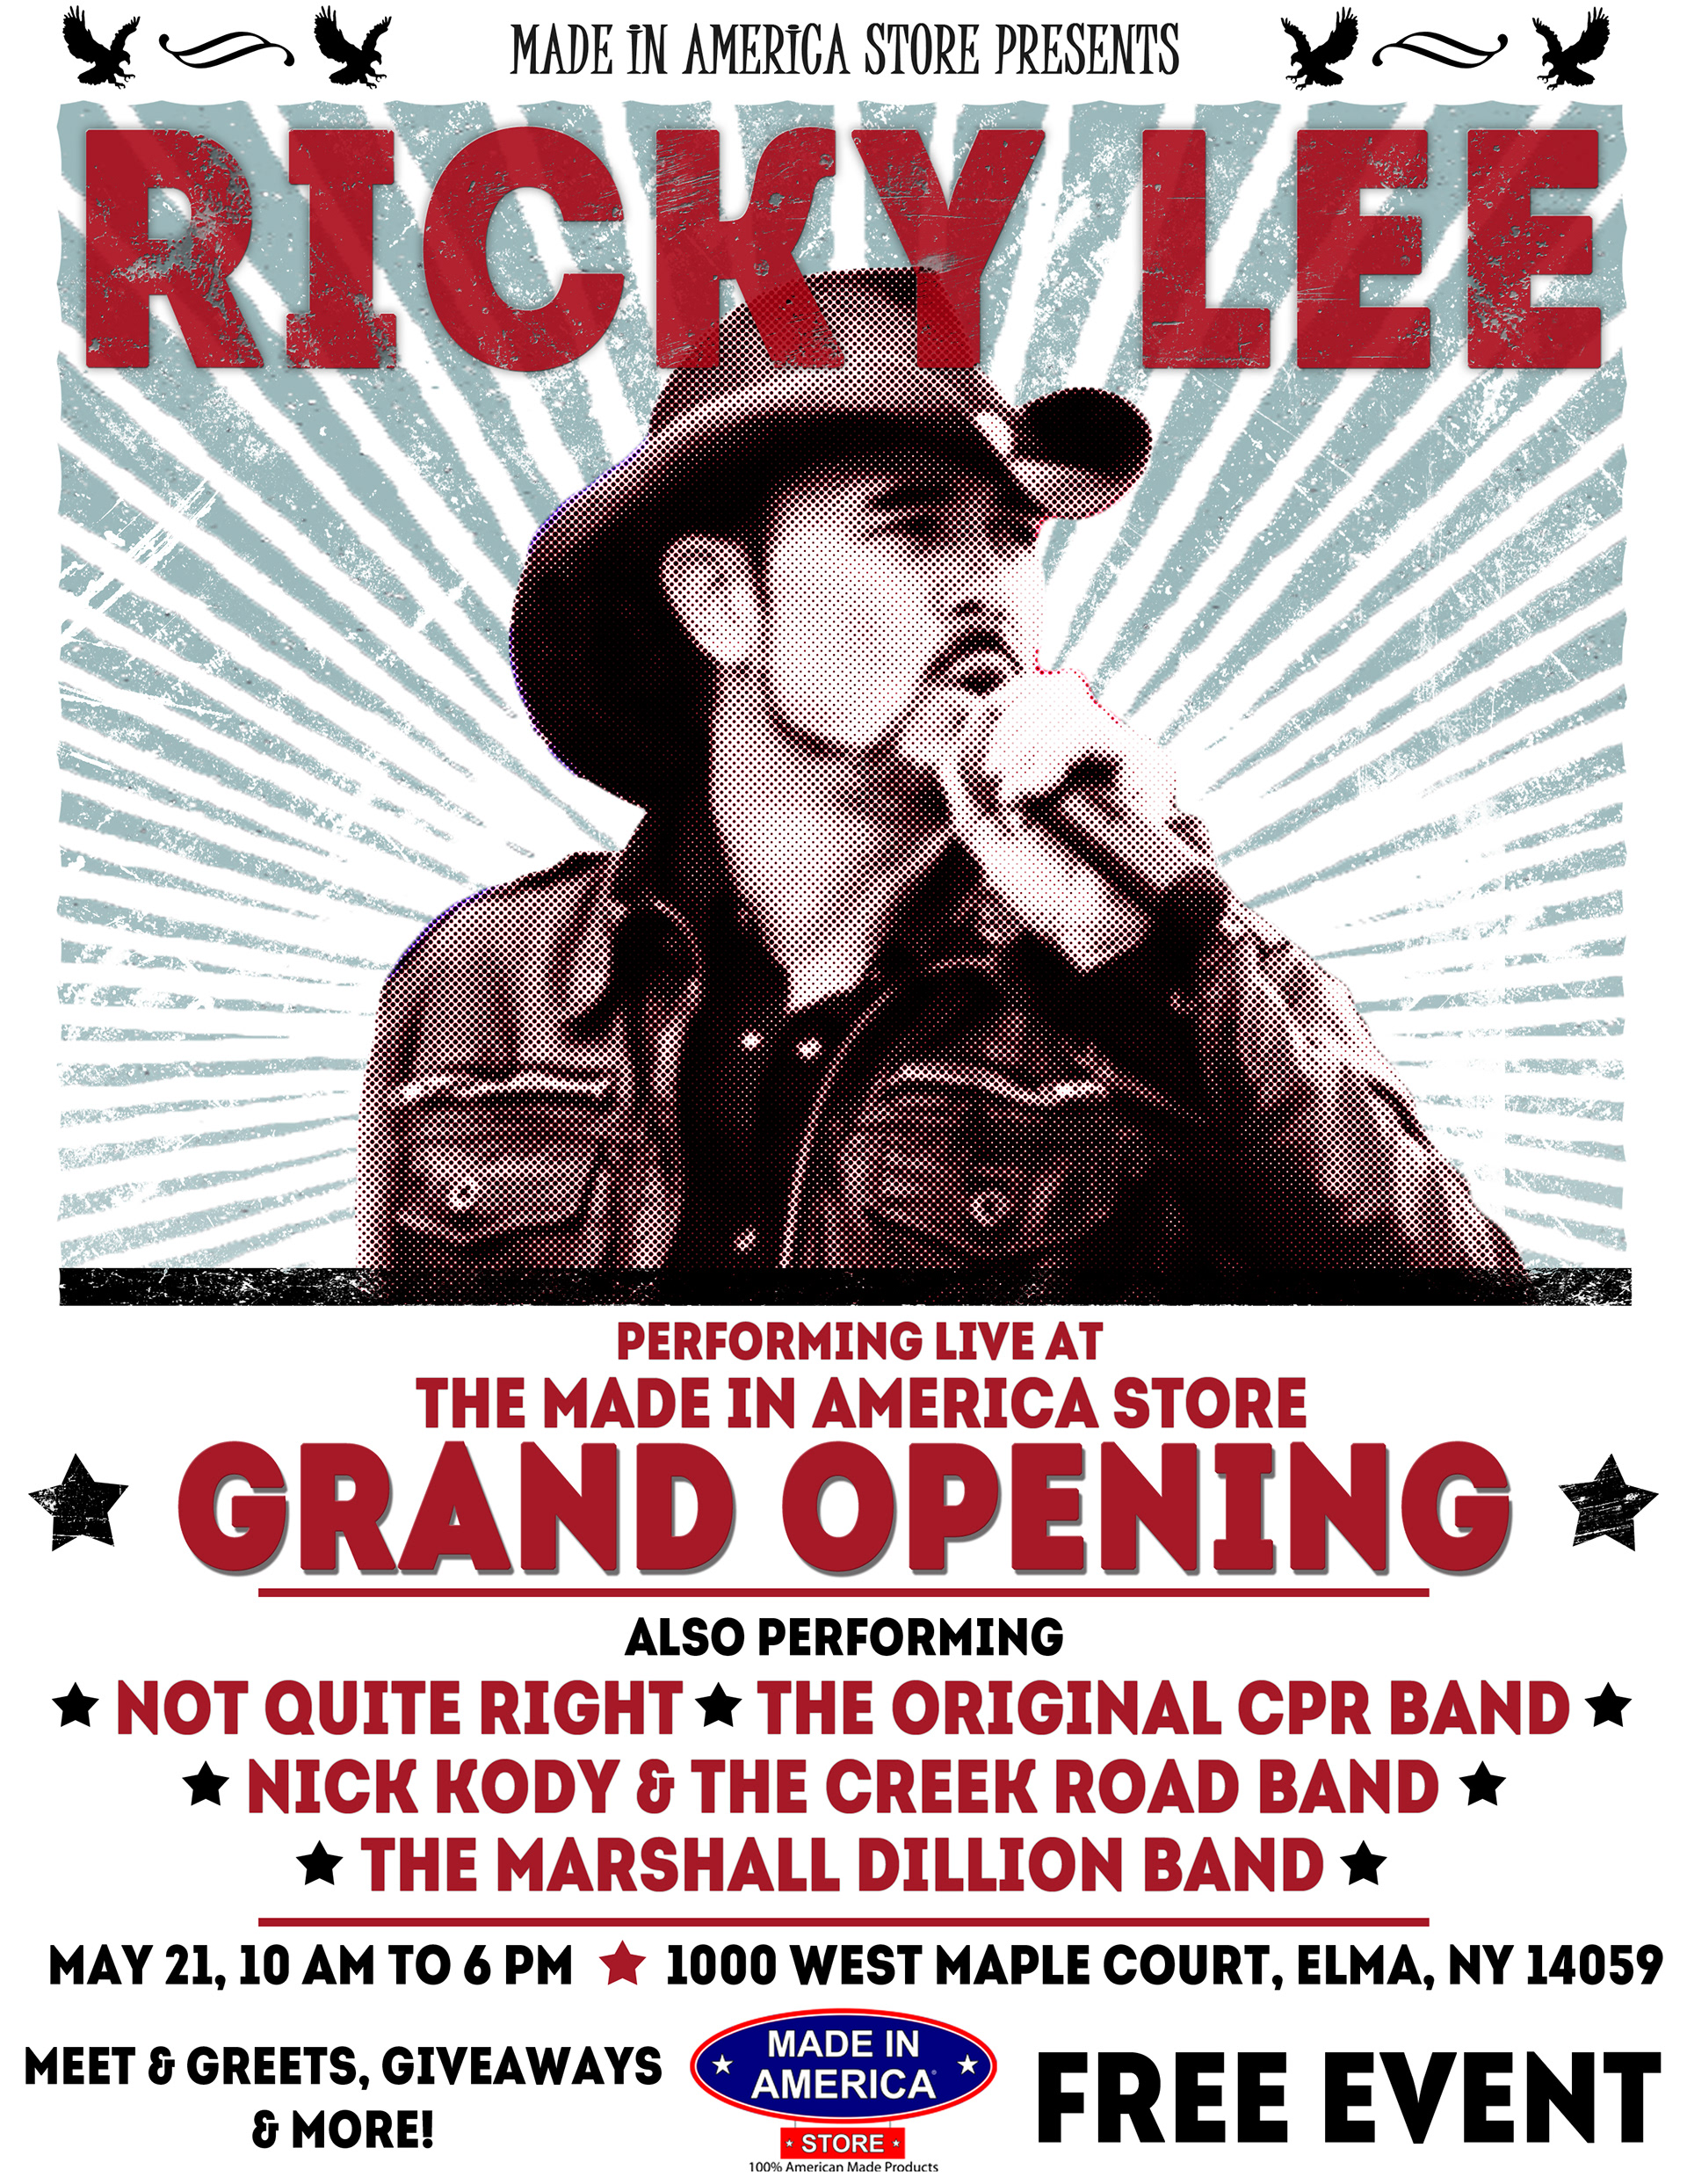 Anthony M Falbo - Grand Opening Music Poster